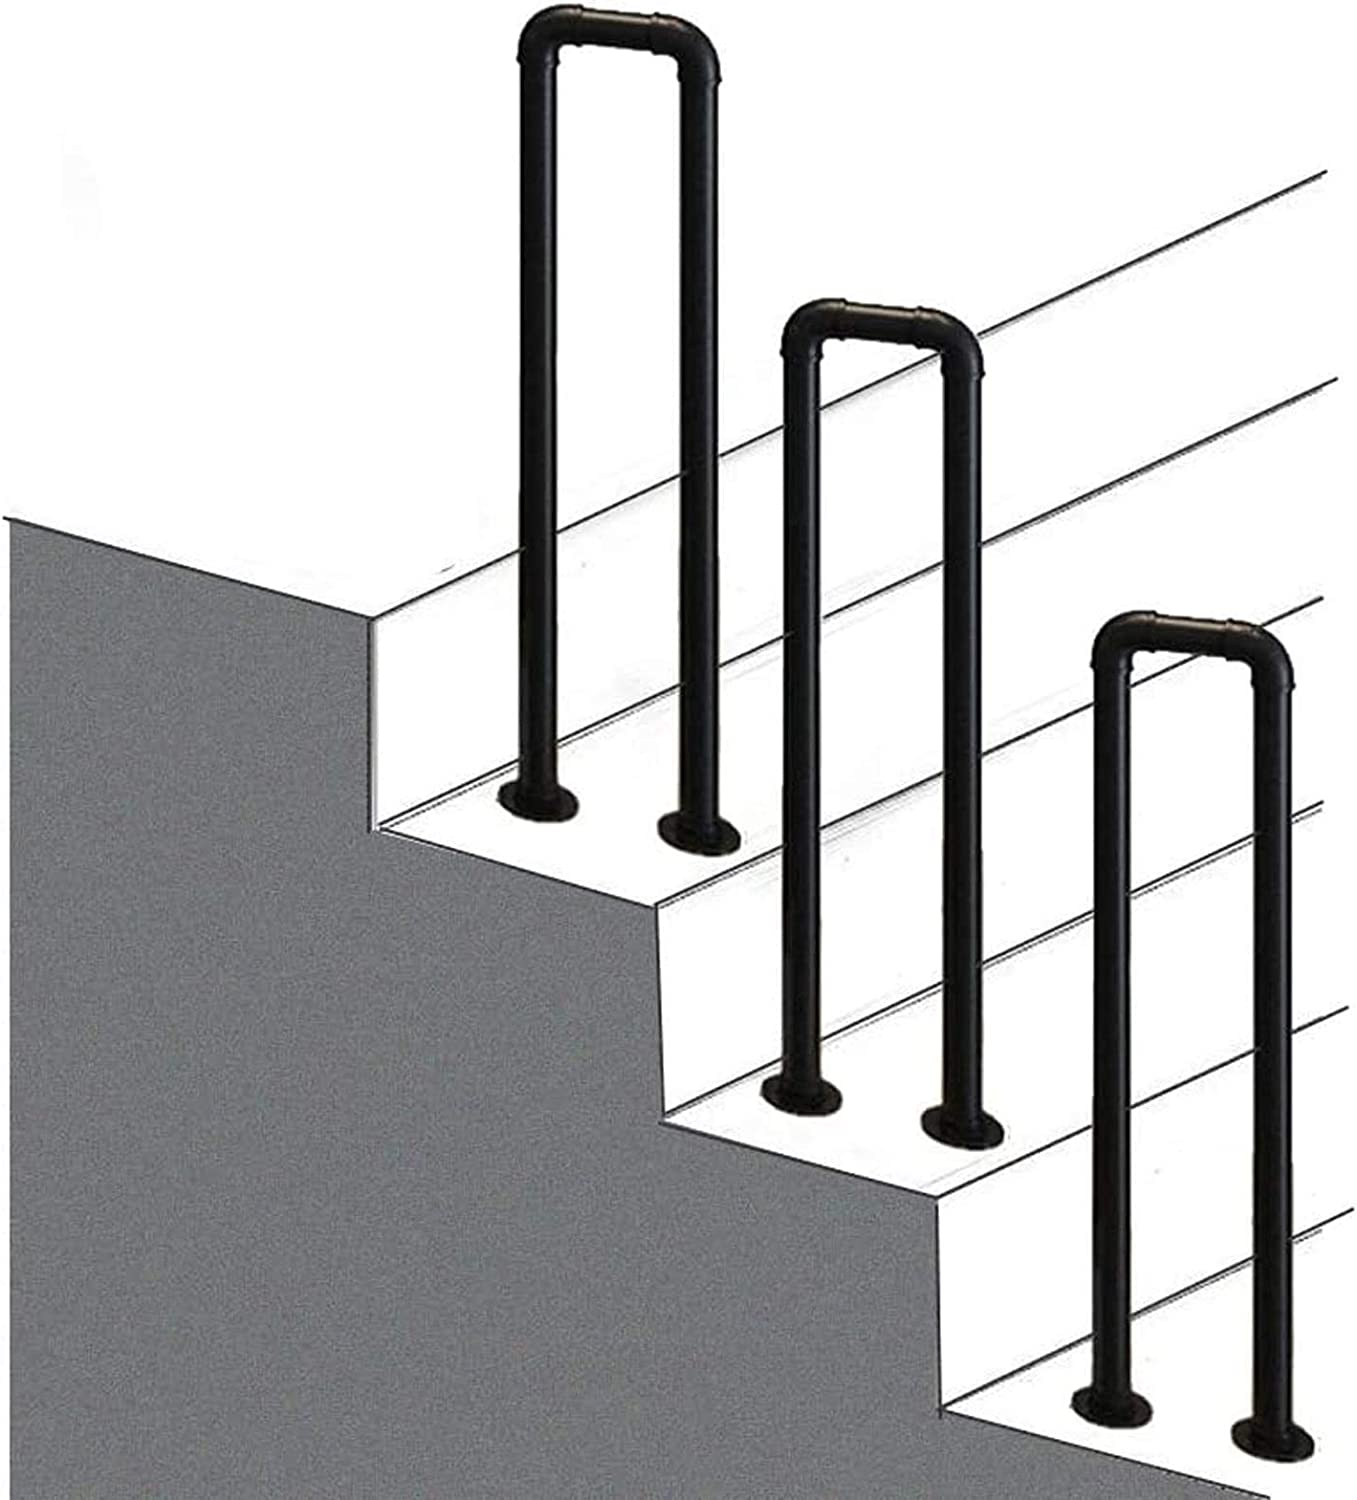 Handrail for Concrete Steps, U-shaped Stairs Banister Handrail for Outdoor Steps - Staircases Railing Handrails for Disabled Elderly Kids Black Metal Wrought Iron Outside - Complete Installation Kit